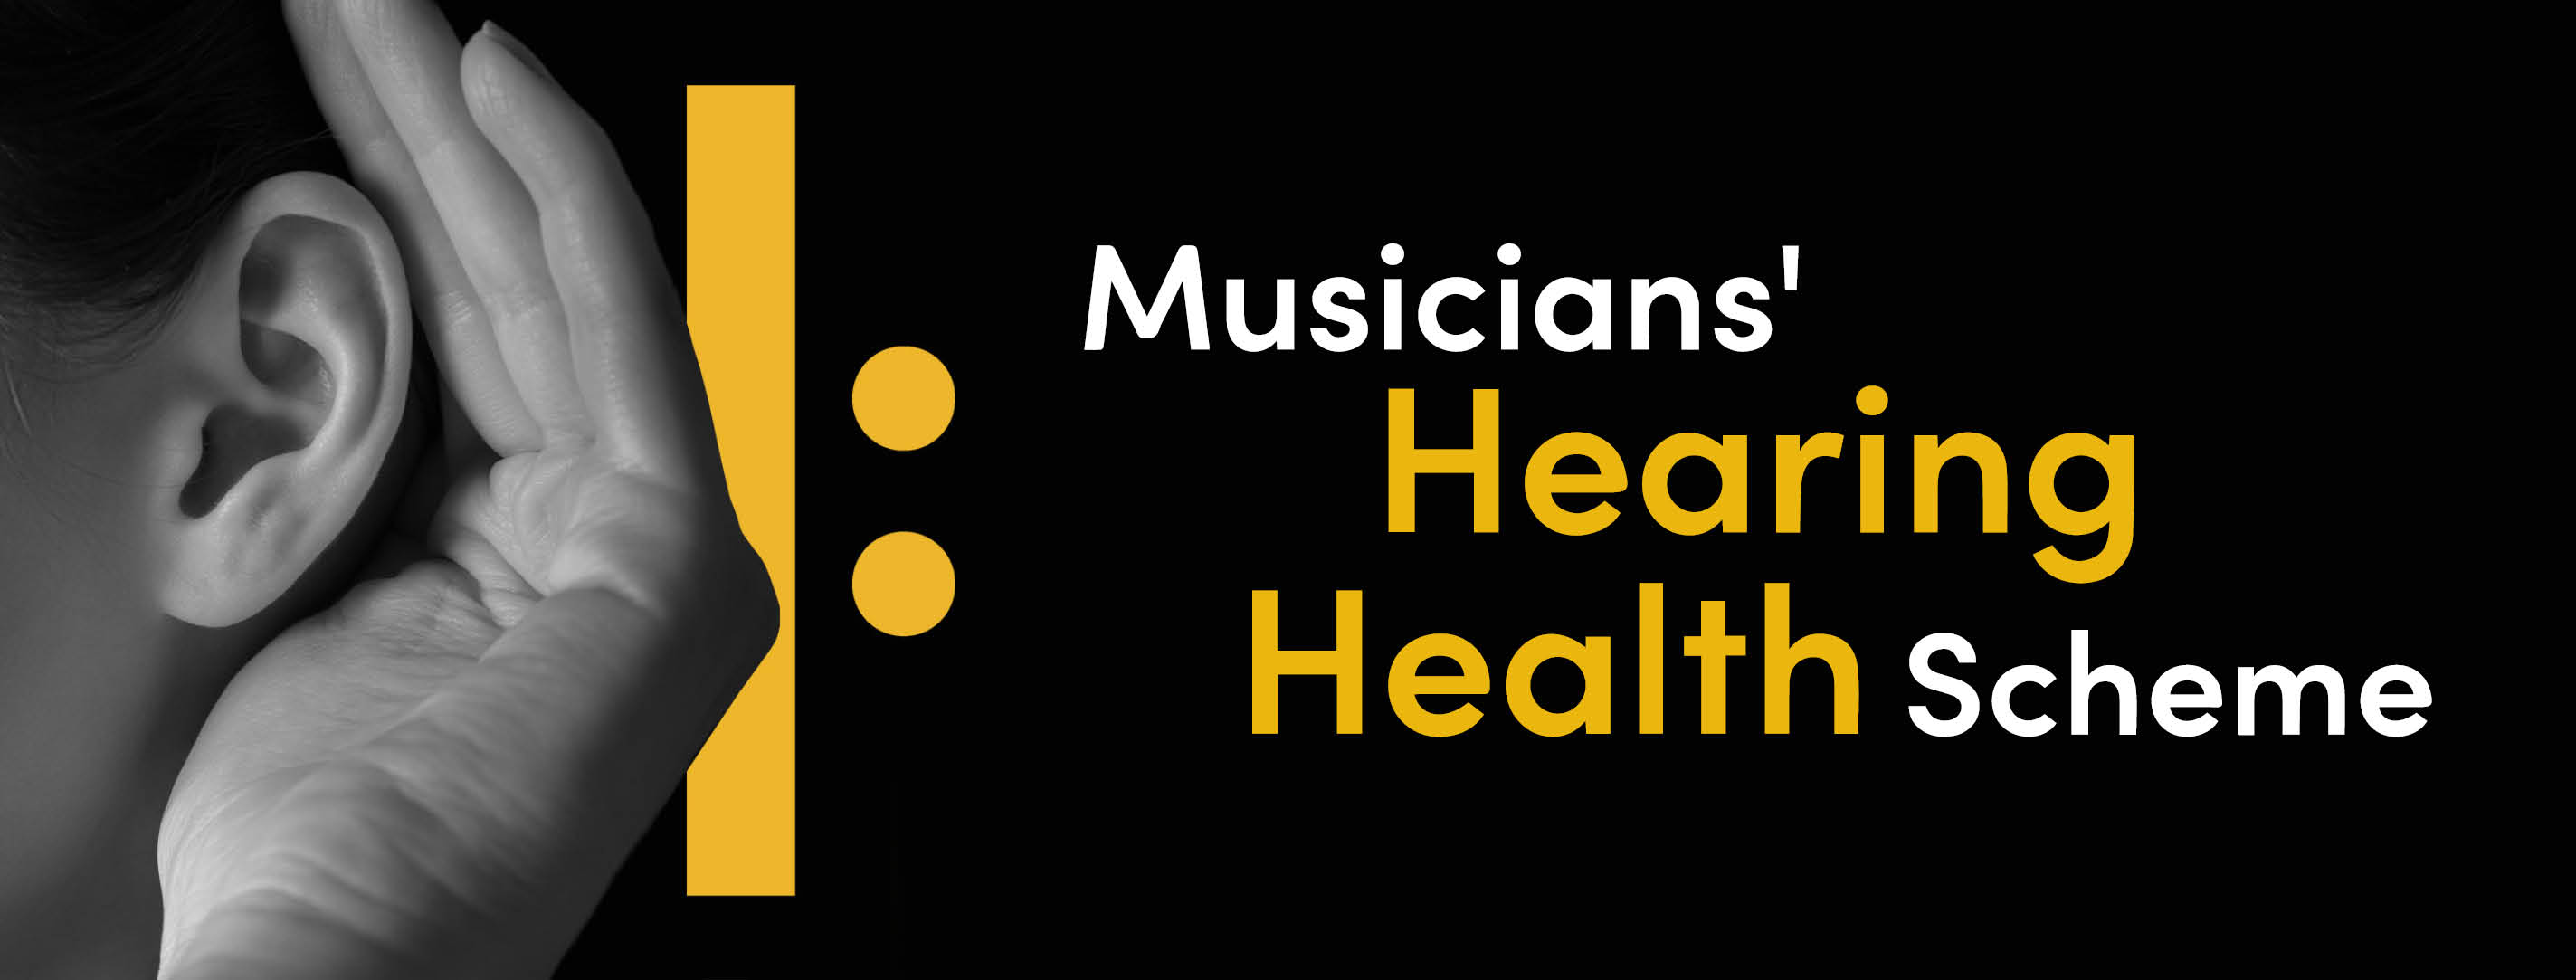 Health & Welfare - Musicians' Hearing Health Scheme